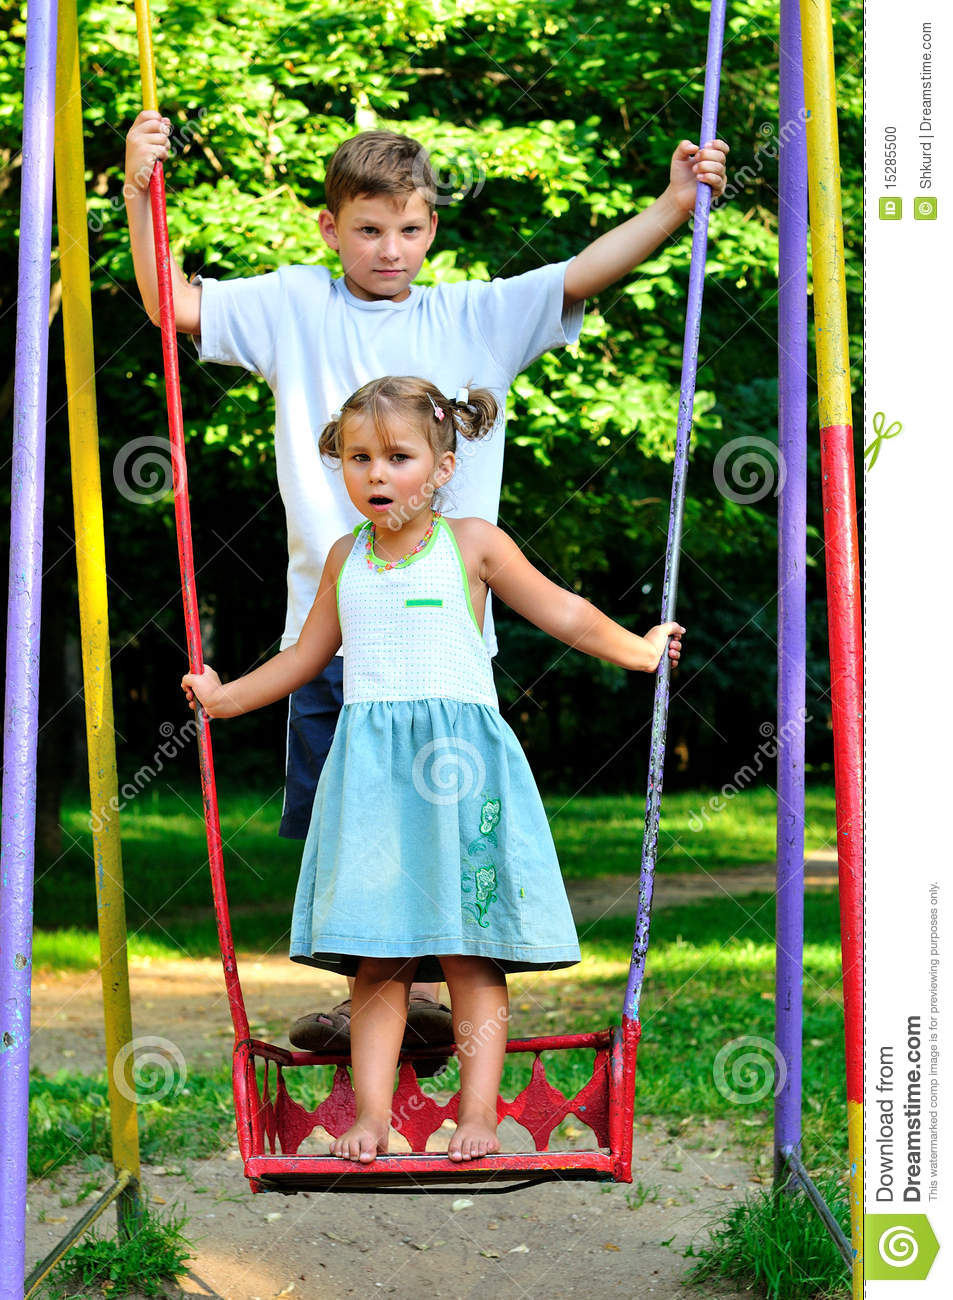 The boy and the girl on a swing